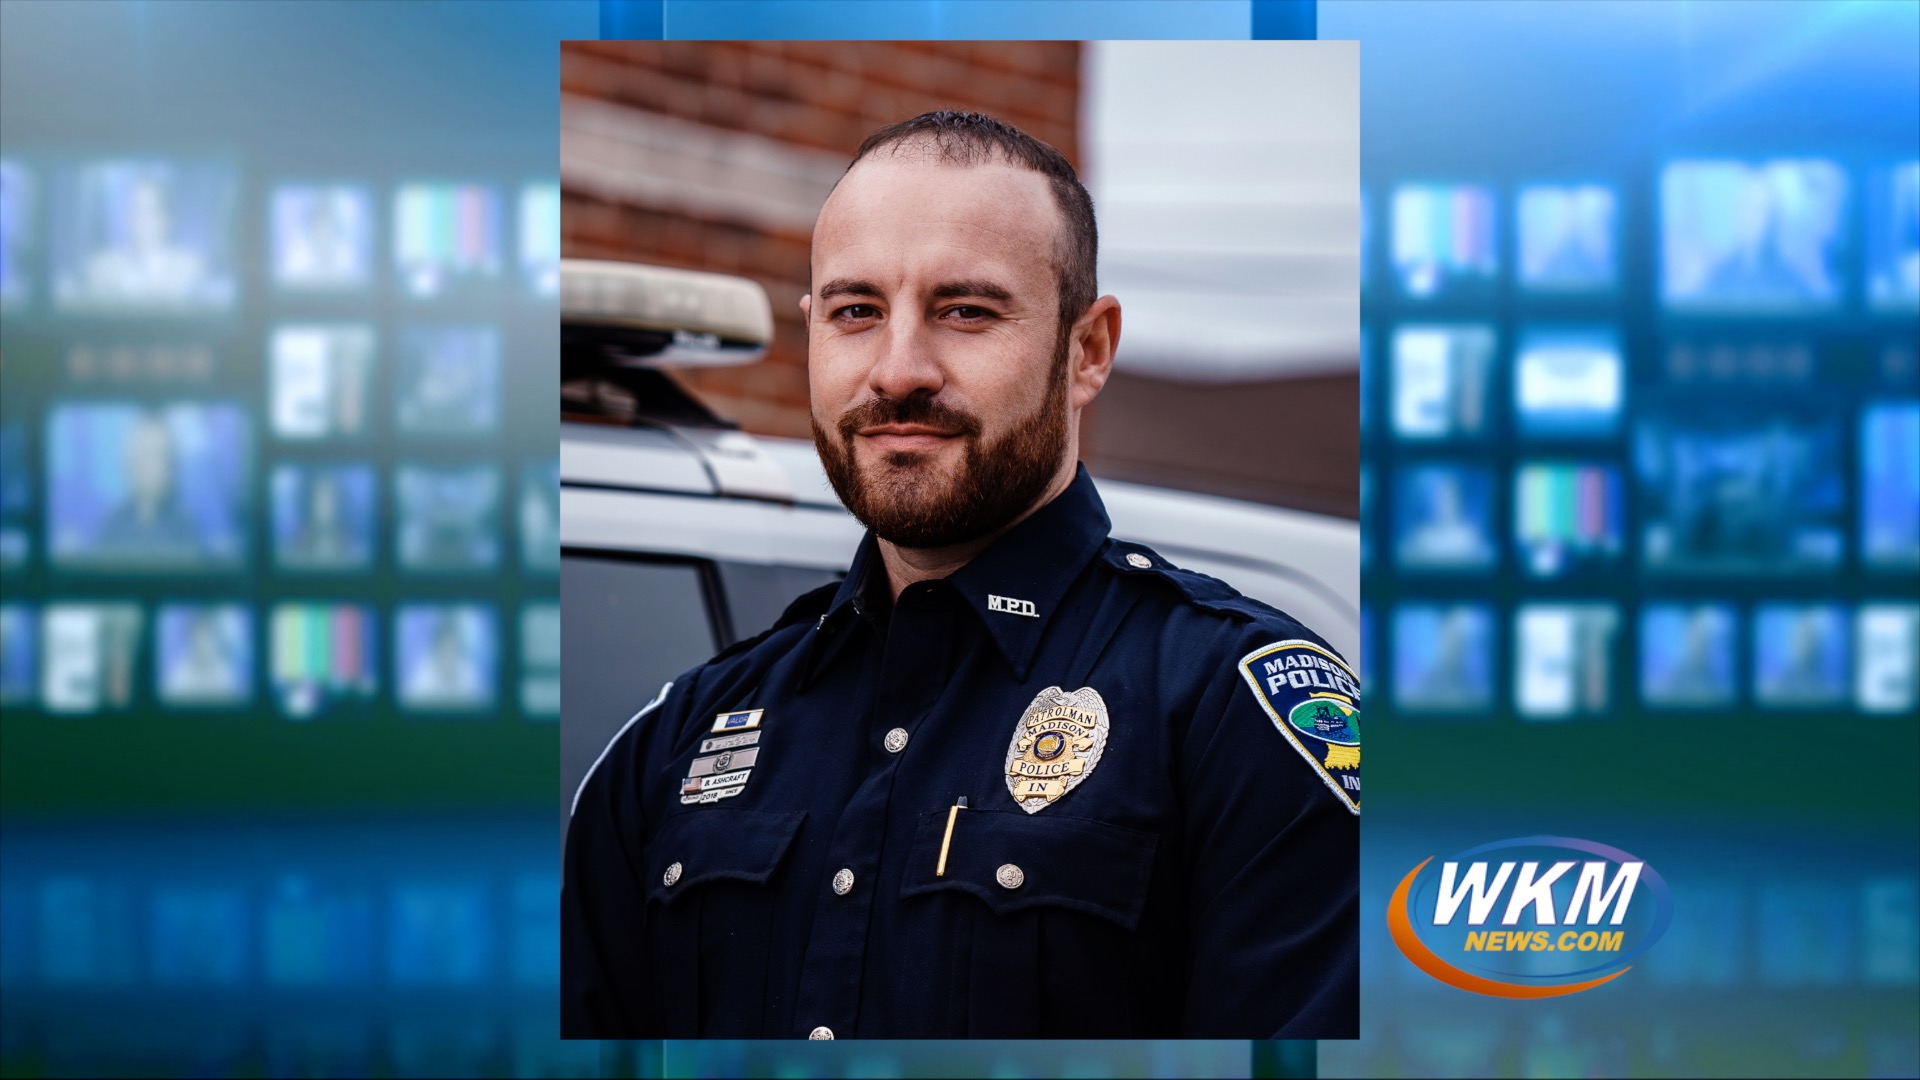 Madison Police Officer Charged with Domestic Battery